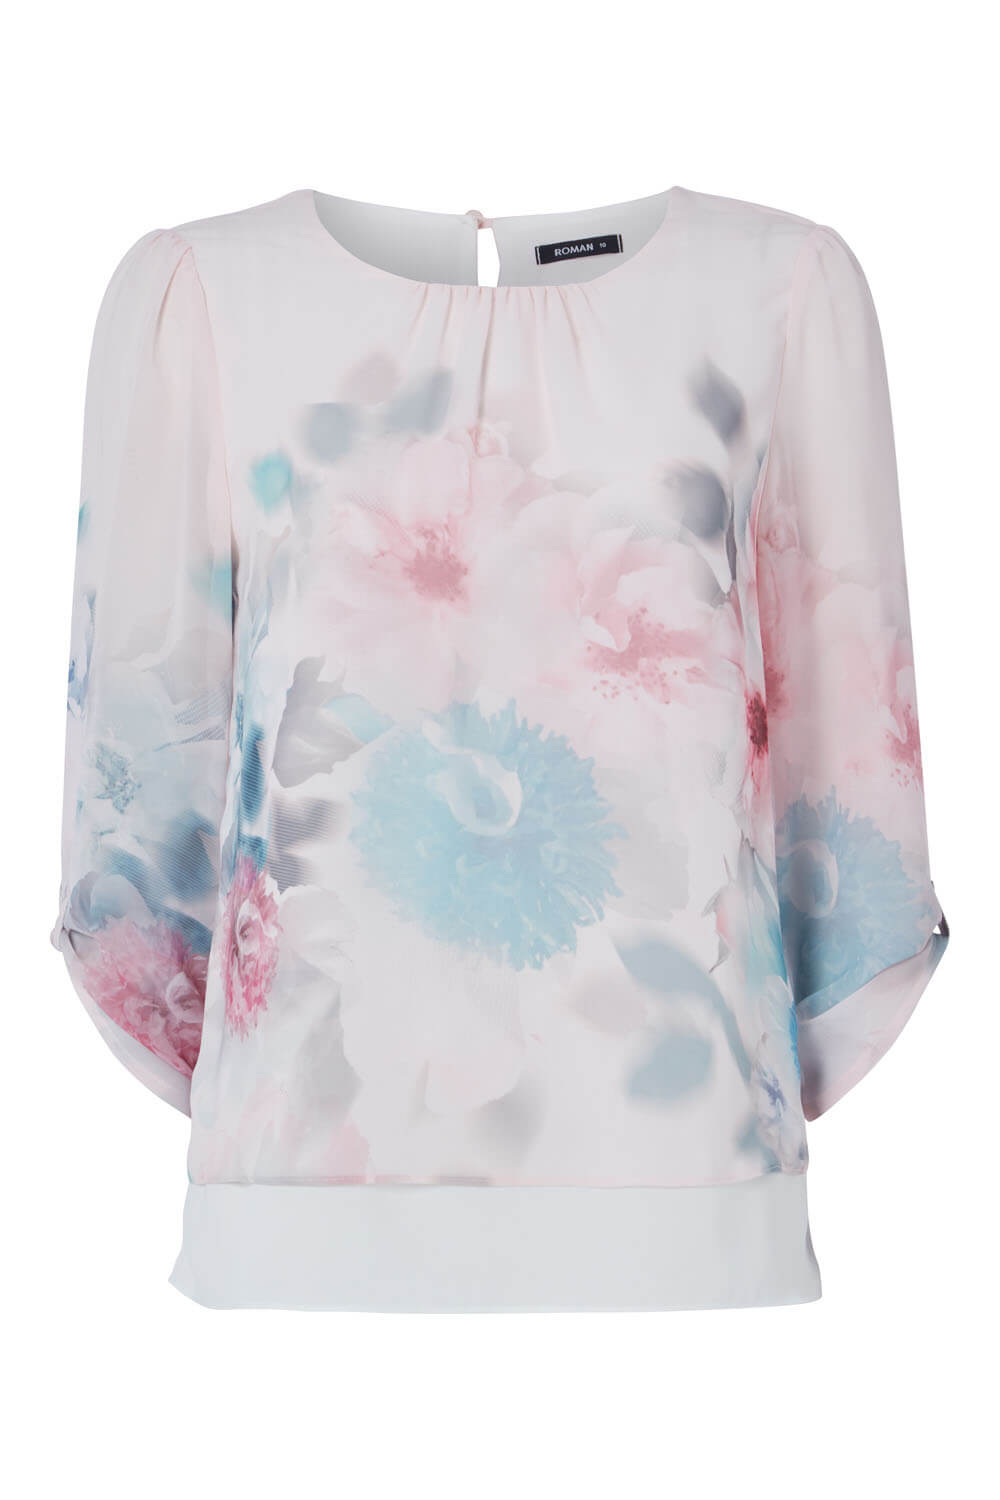 Roman-Originals-Womens-3-4-Length-Sleeve-Floral-Overlay-Top thumbnail 16